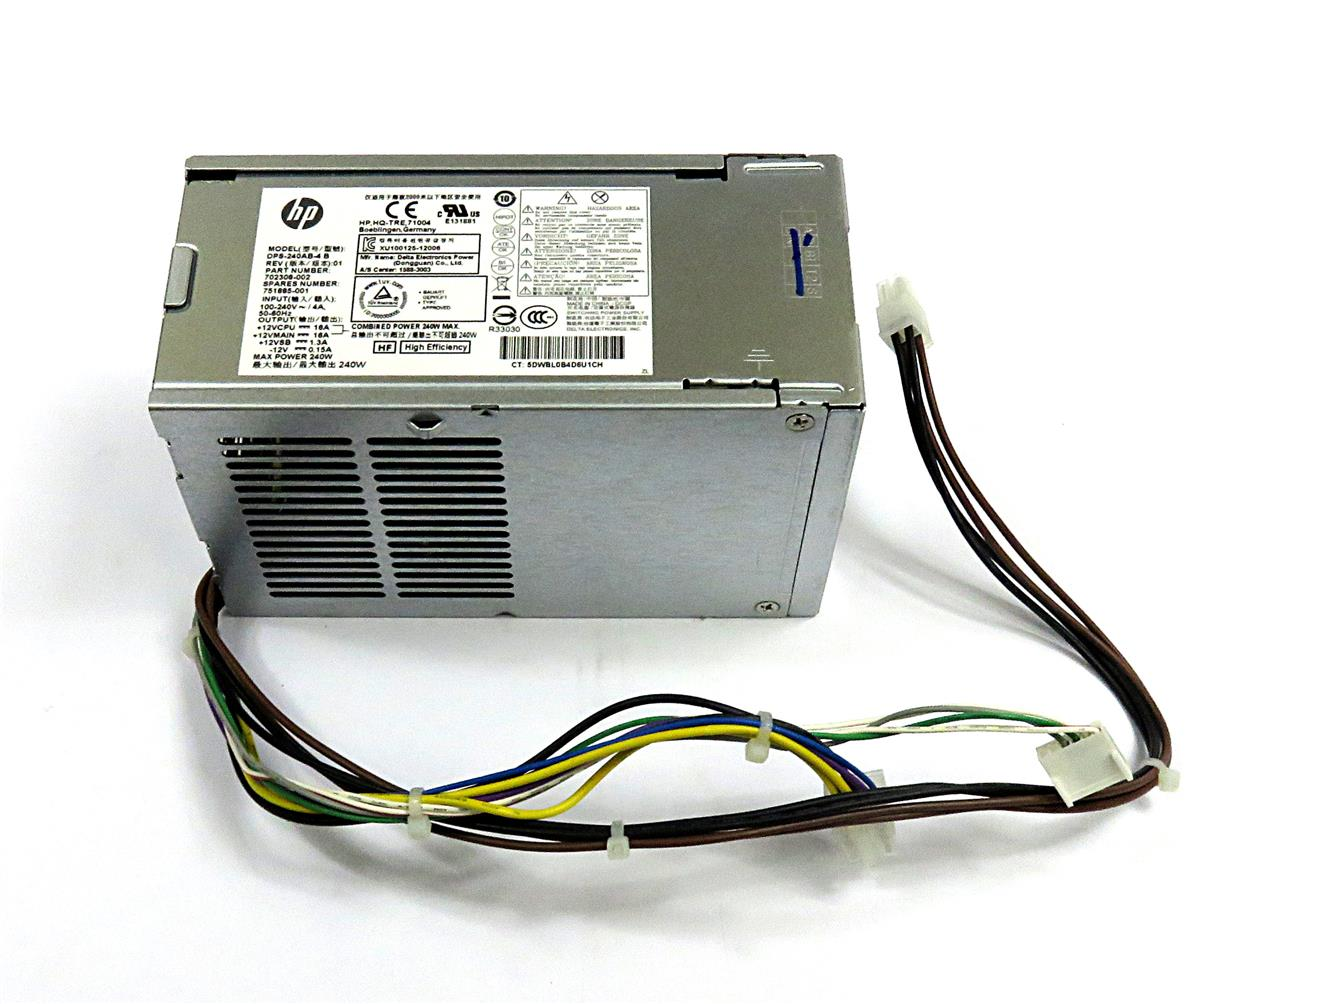 702308-002 /751865-001 / 751885-001 - HP 240 WATTS SFF PFC PSU (REF)